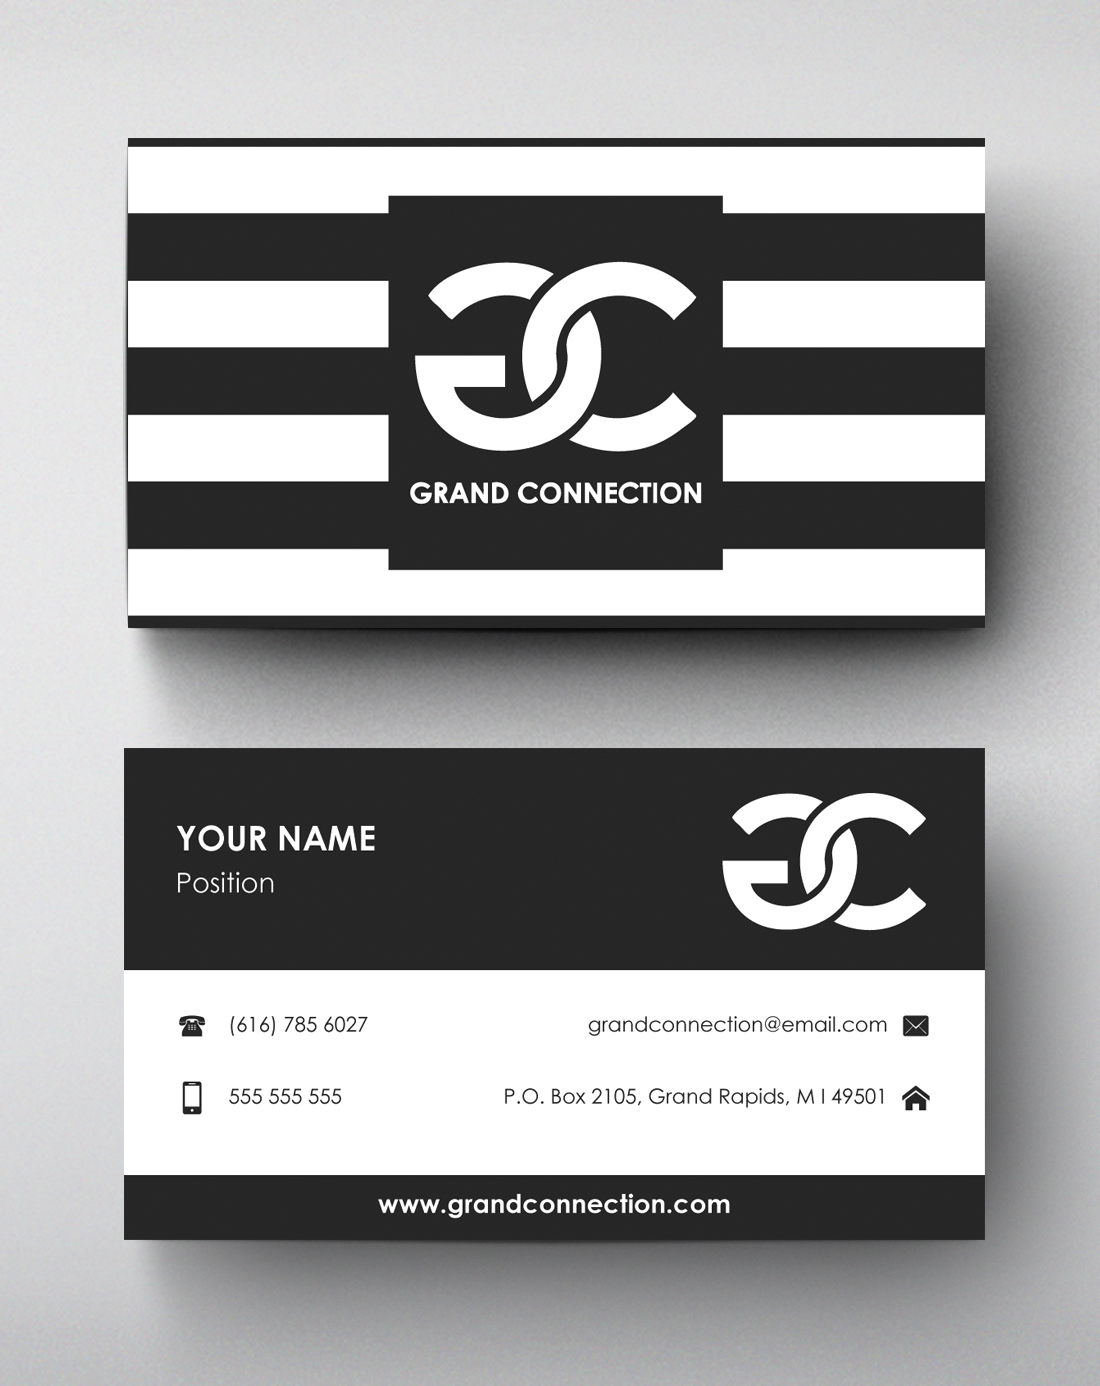 Modern, Professional, Event Planning Business Card Design for a ...